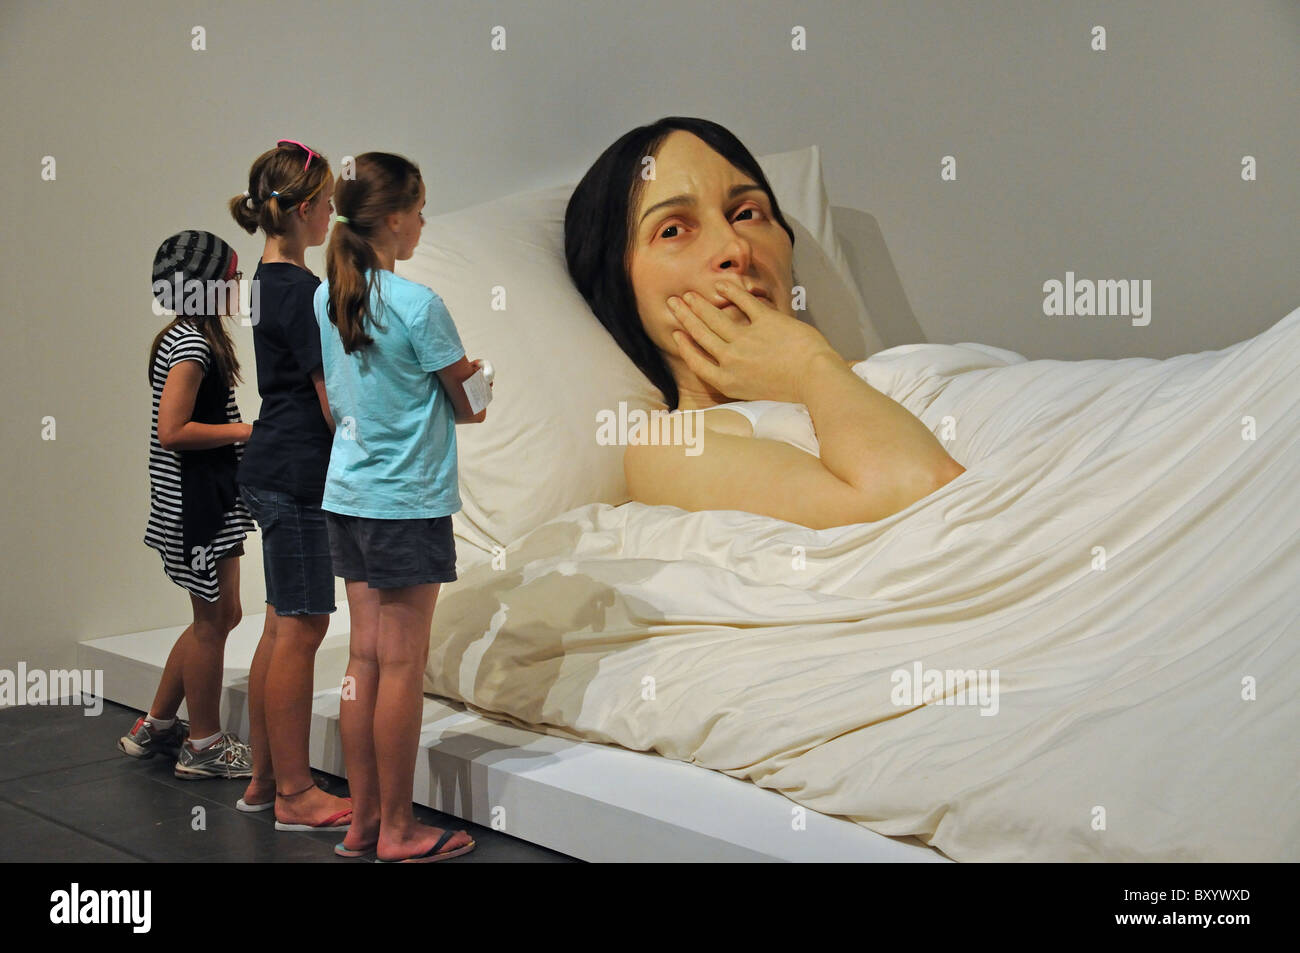 woman in bed sculpture at ron mueck exhibition christchurch art